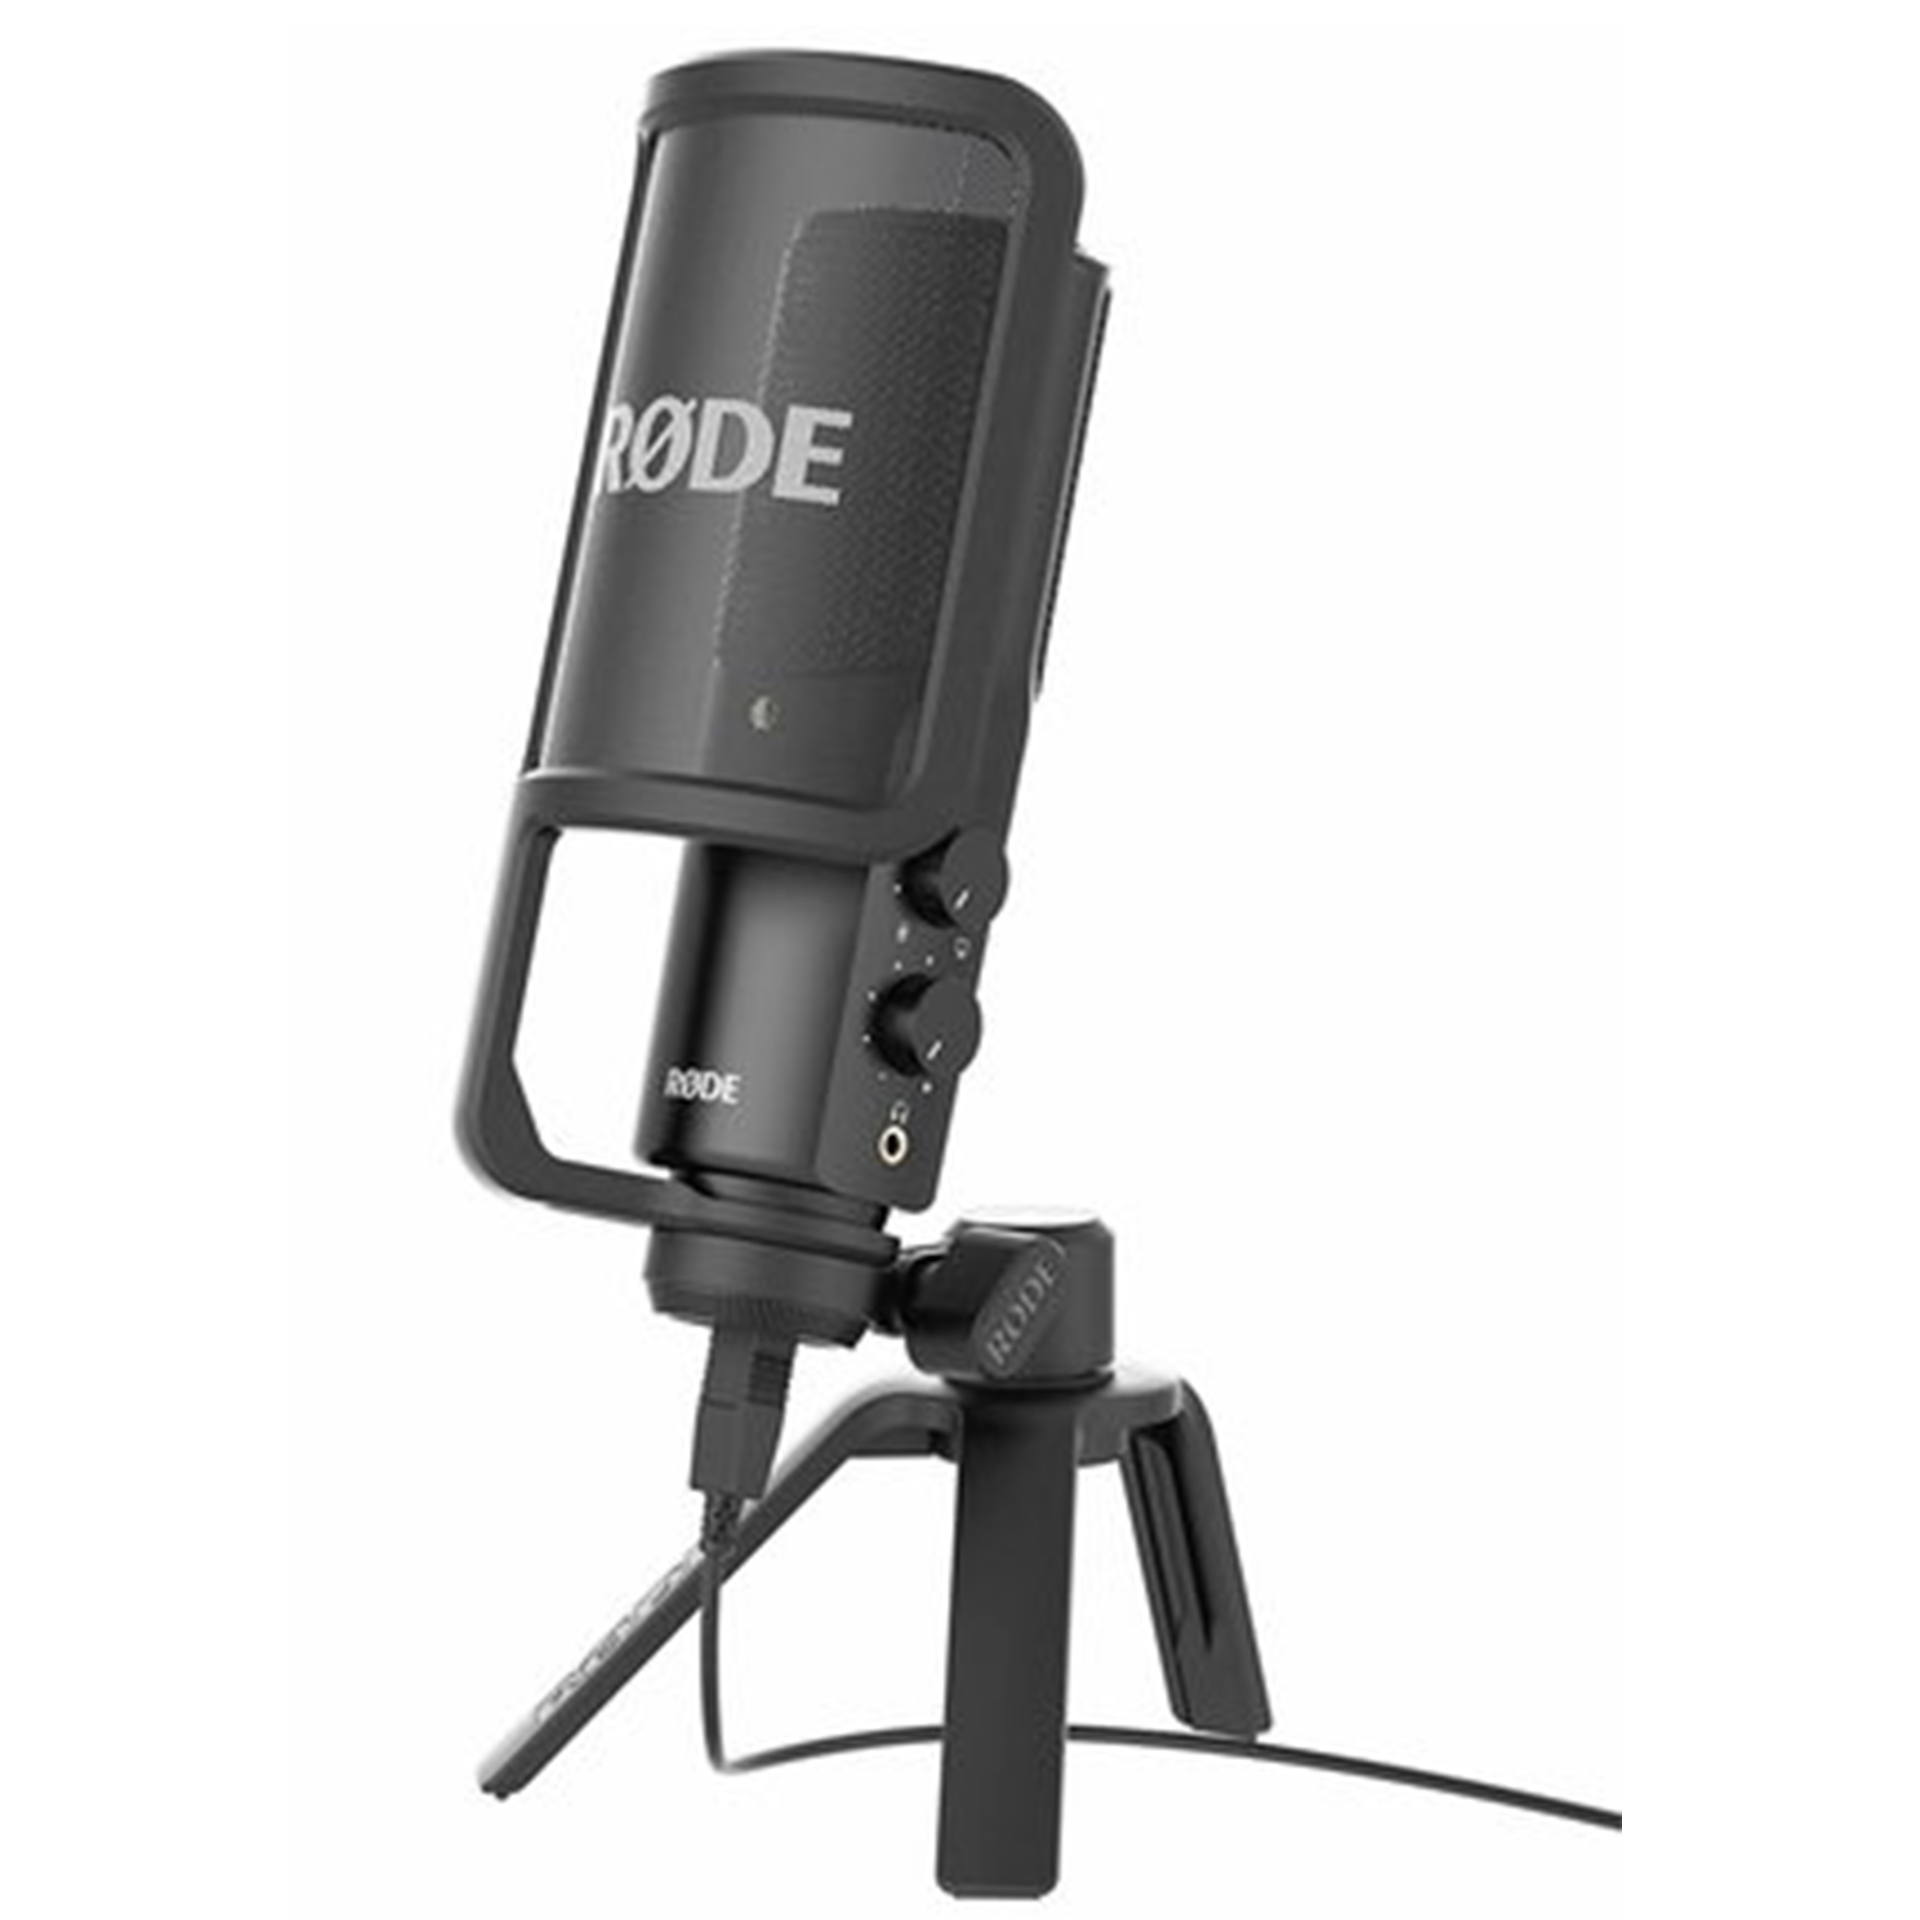 Rode NT-USB USB Condenser Microphone -